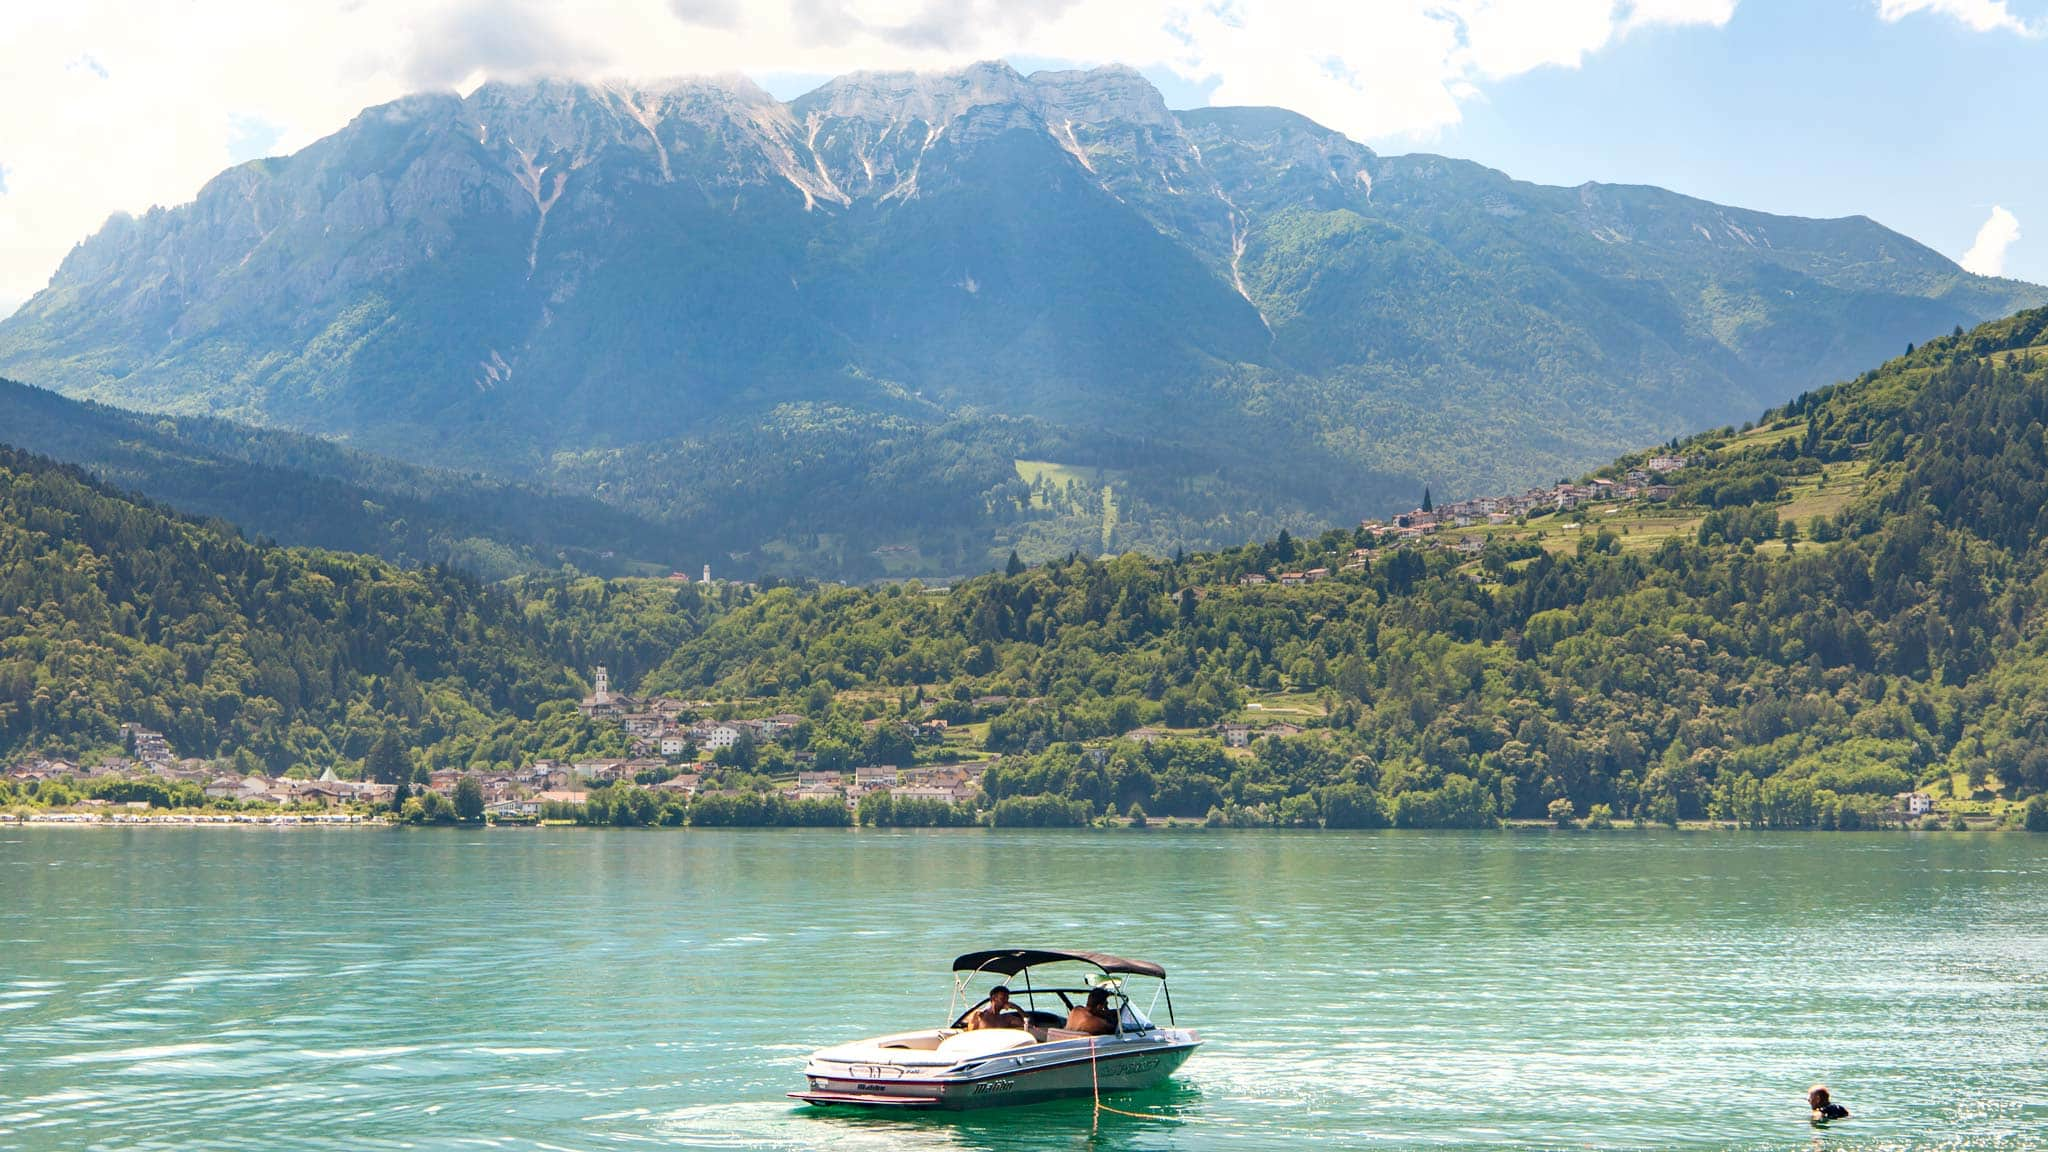 Watersport's are a huge part of Valsugana